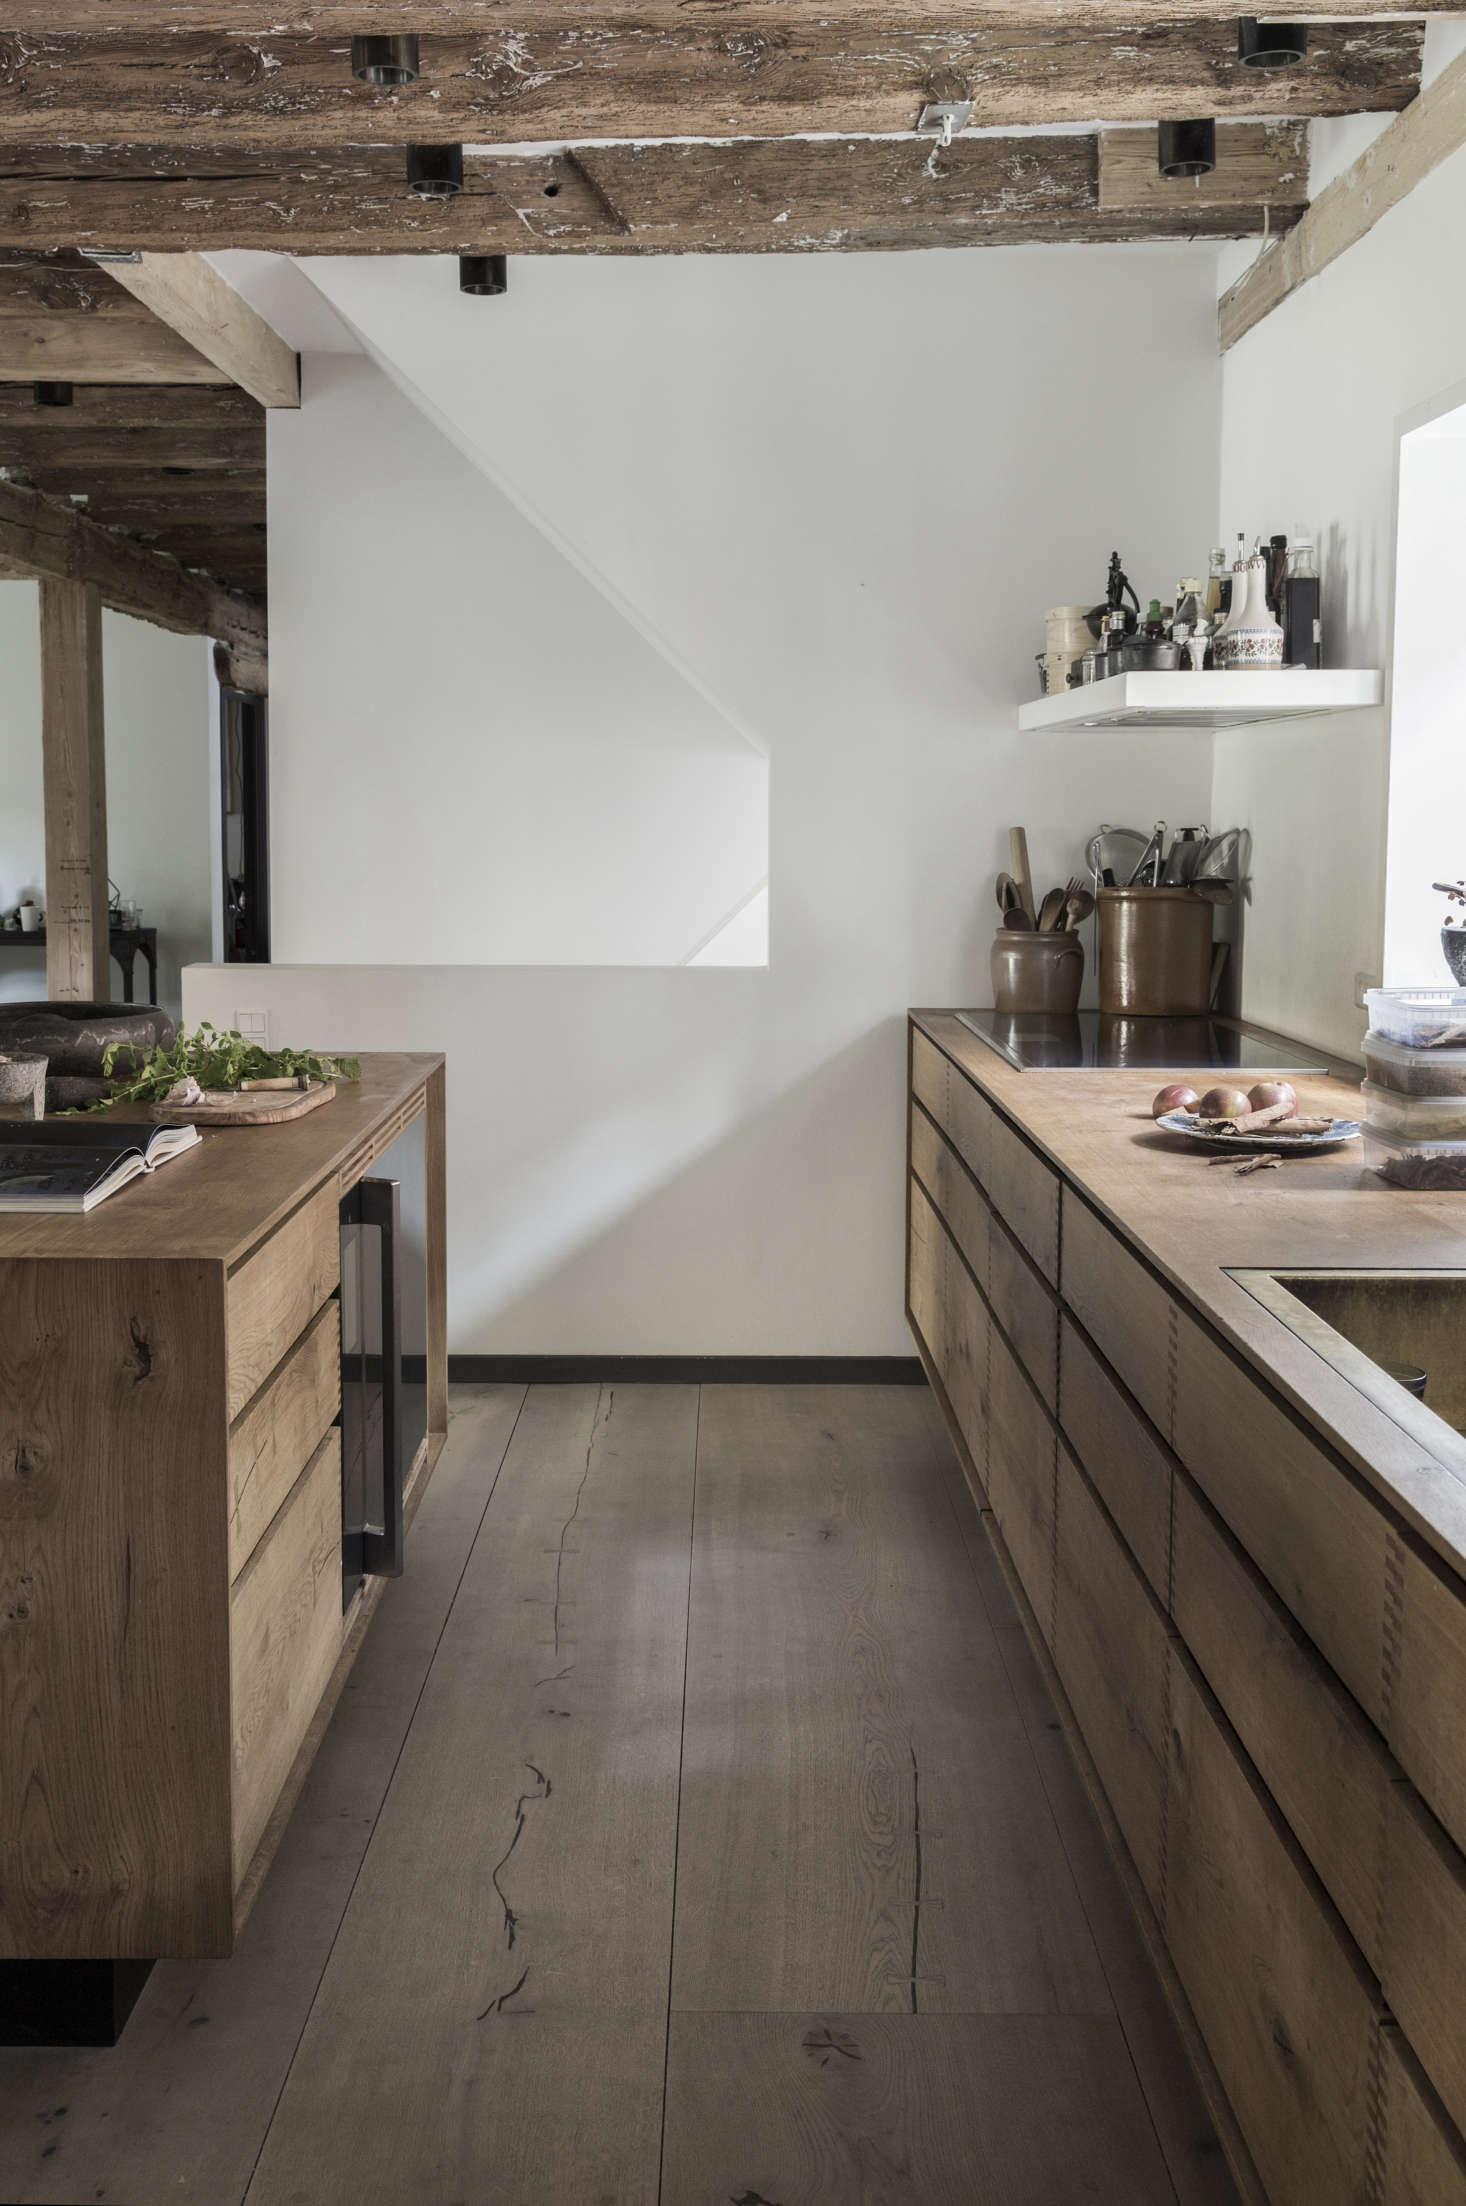 Cooking essentials are kept near the stove, including on the vent hood above. Photograph courtesy of Dinesen.